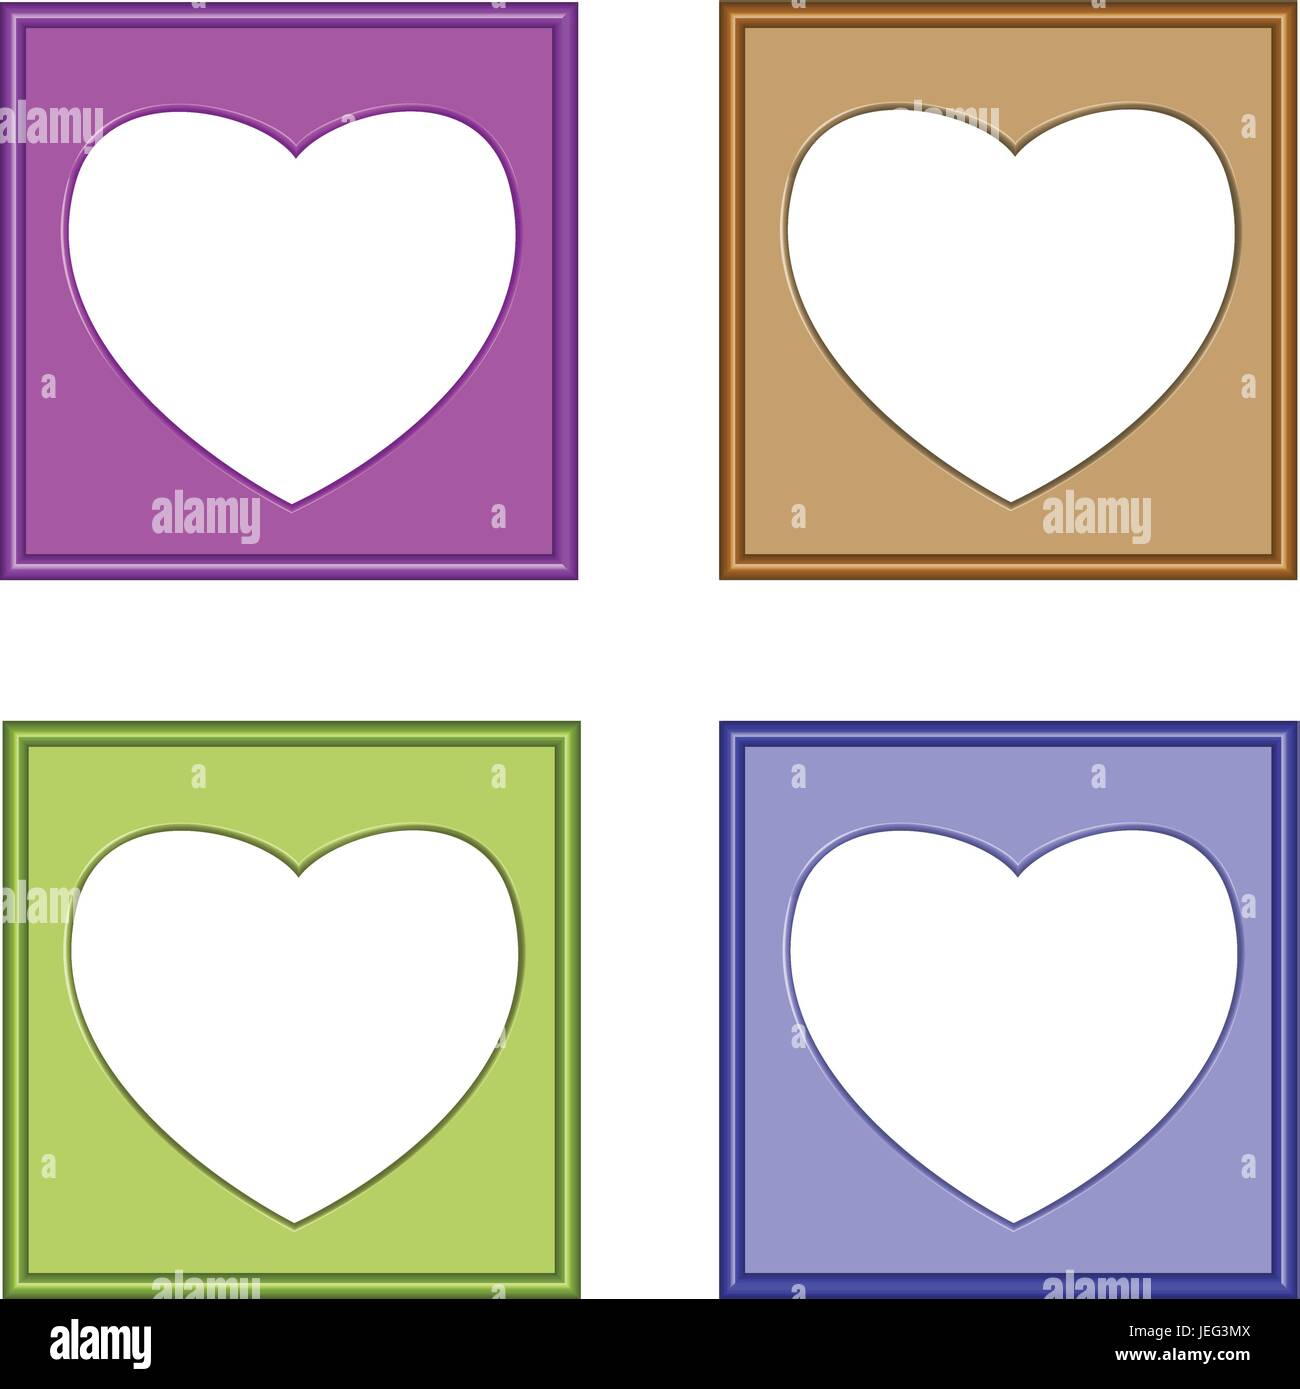 Heart And Frames Stock Photos & Heart And Frames Stock Images - Alamy